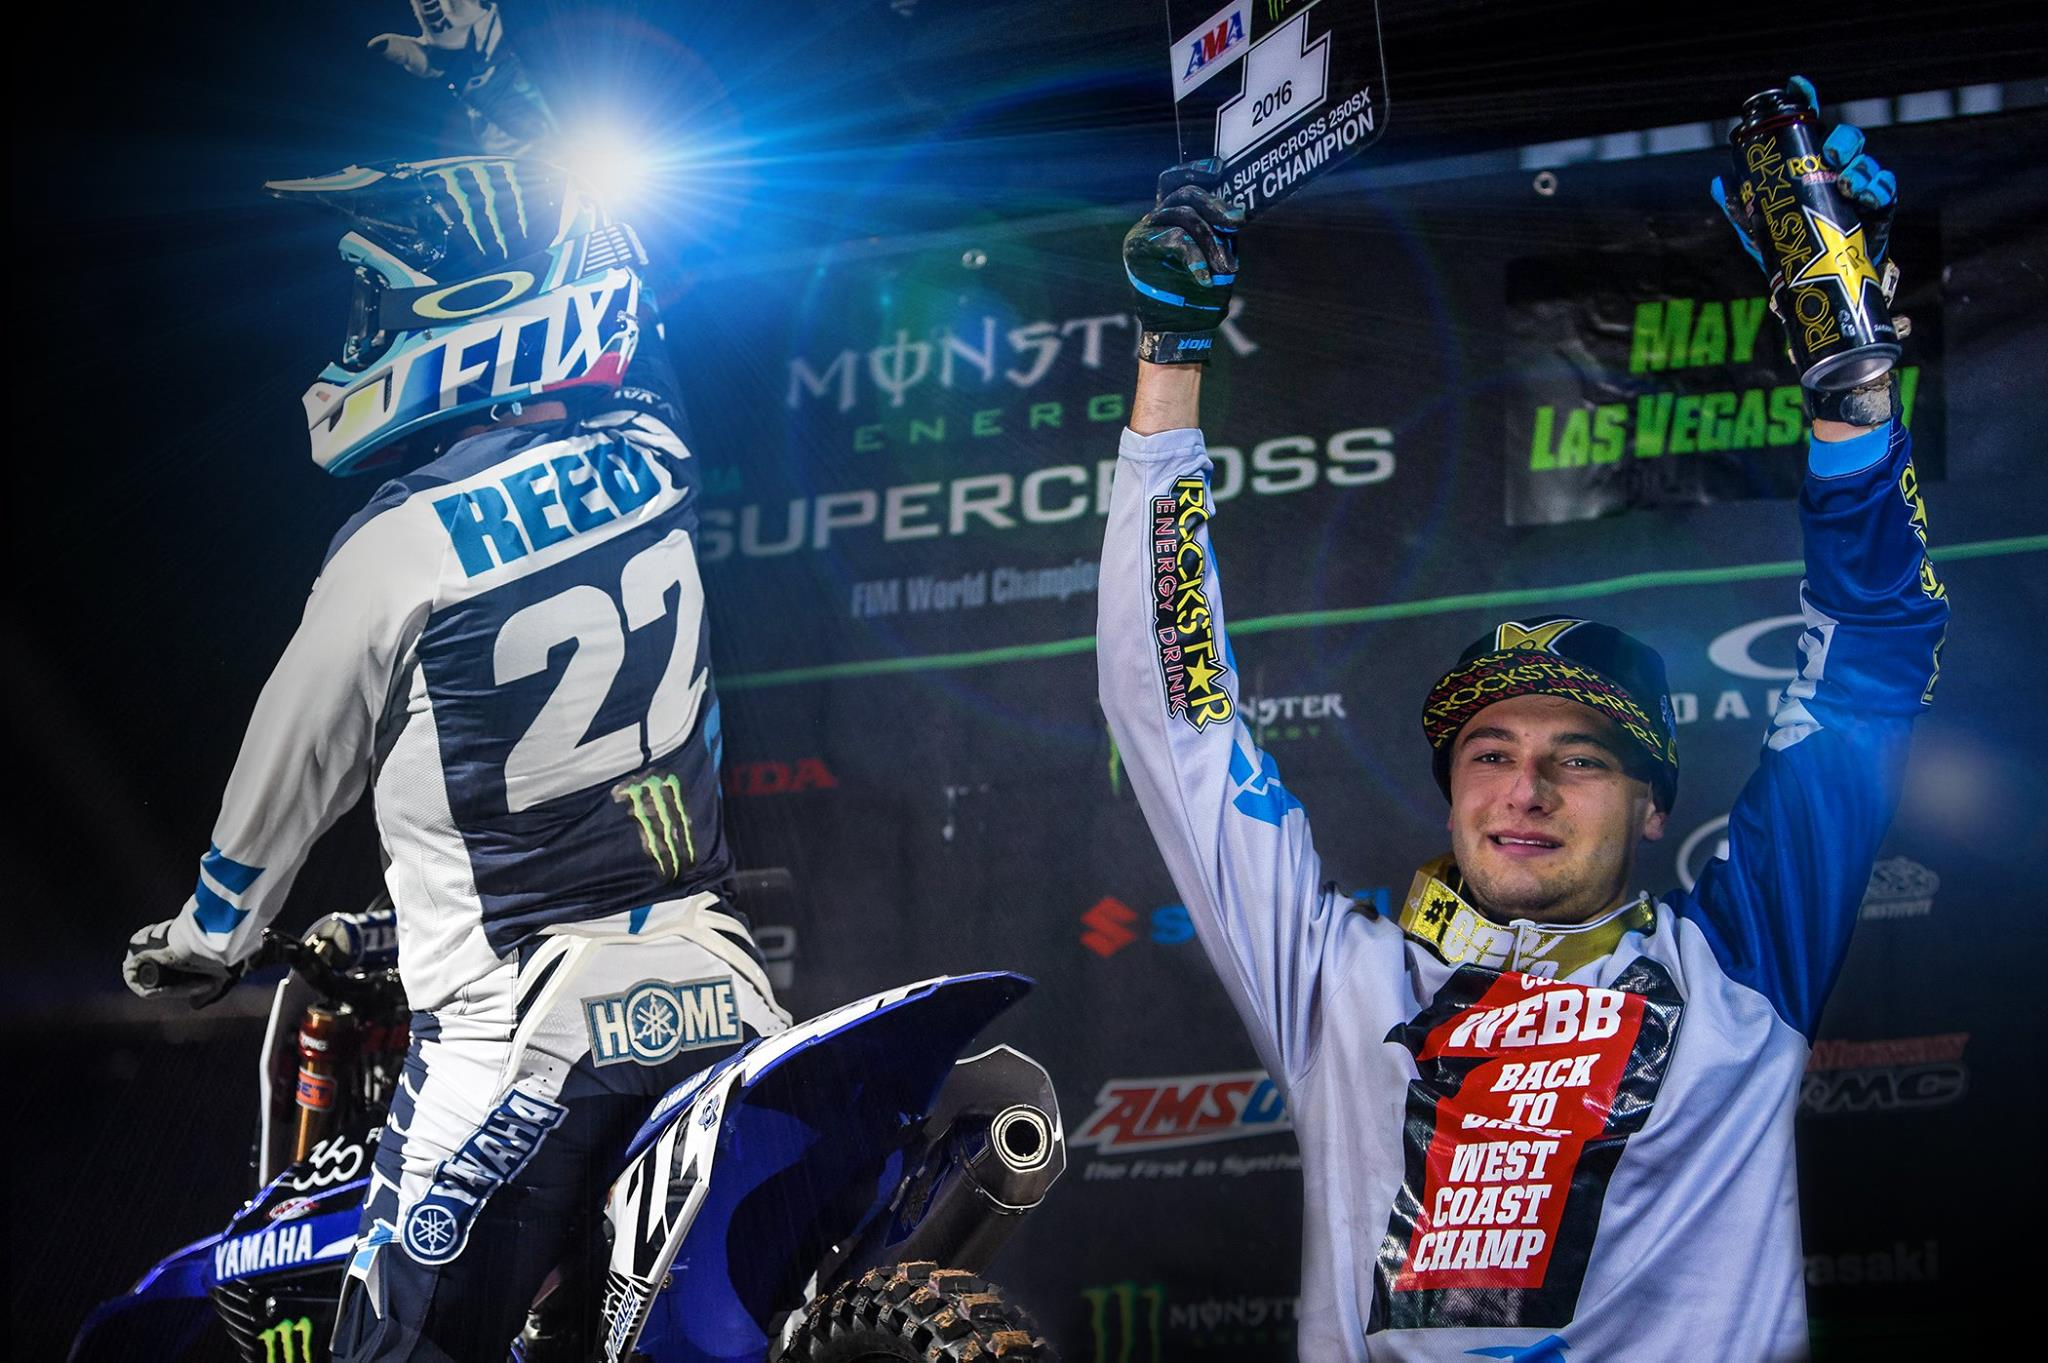 Chad Reed and Cooper Webb